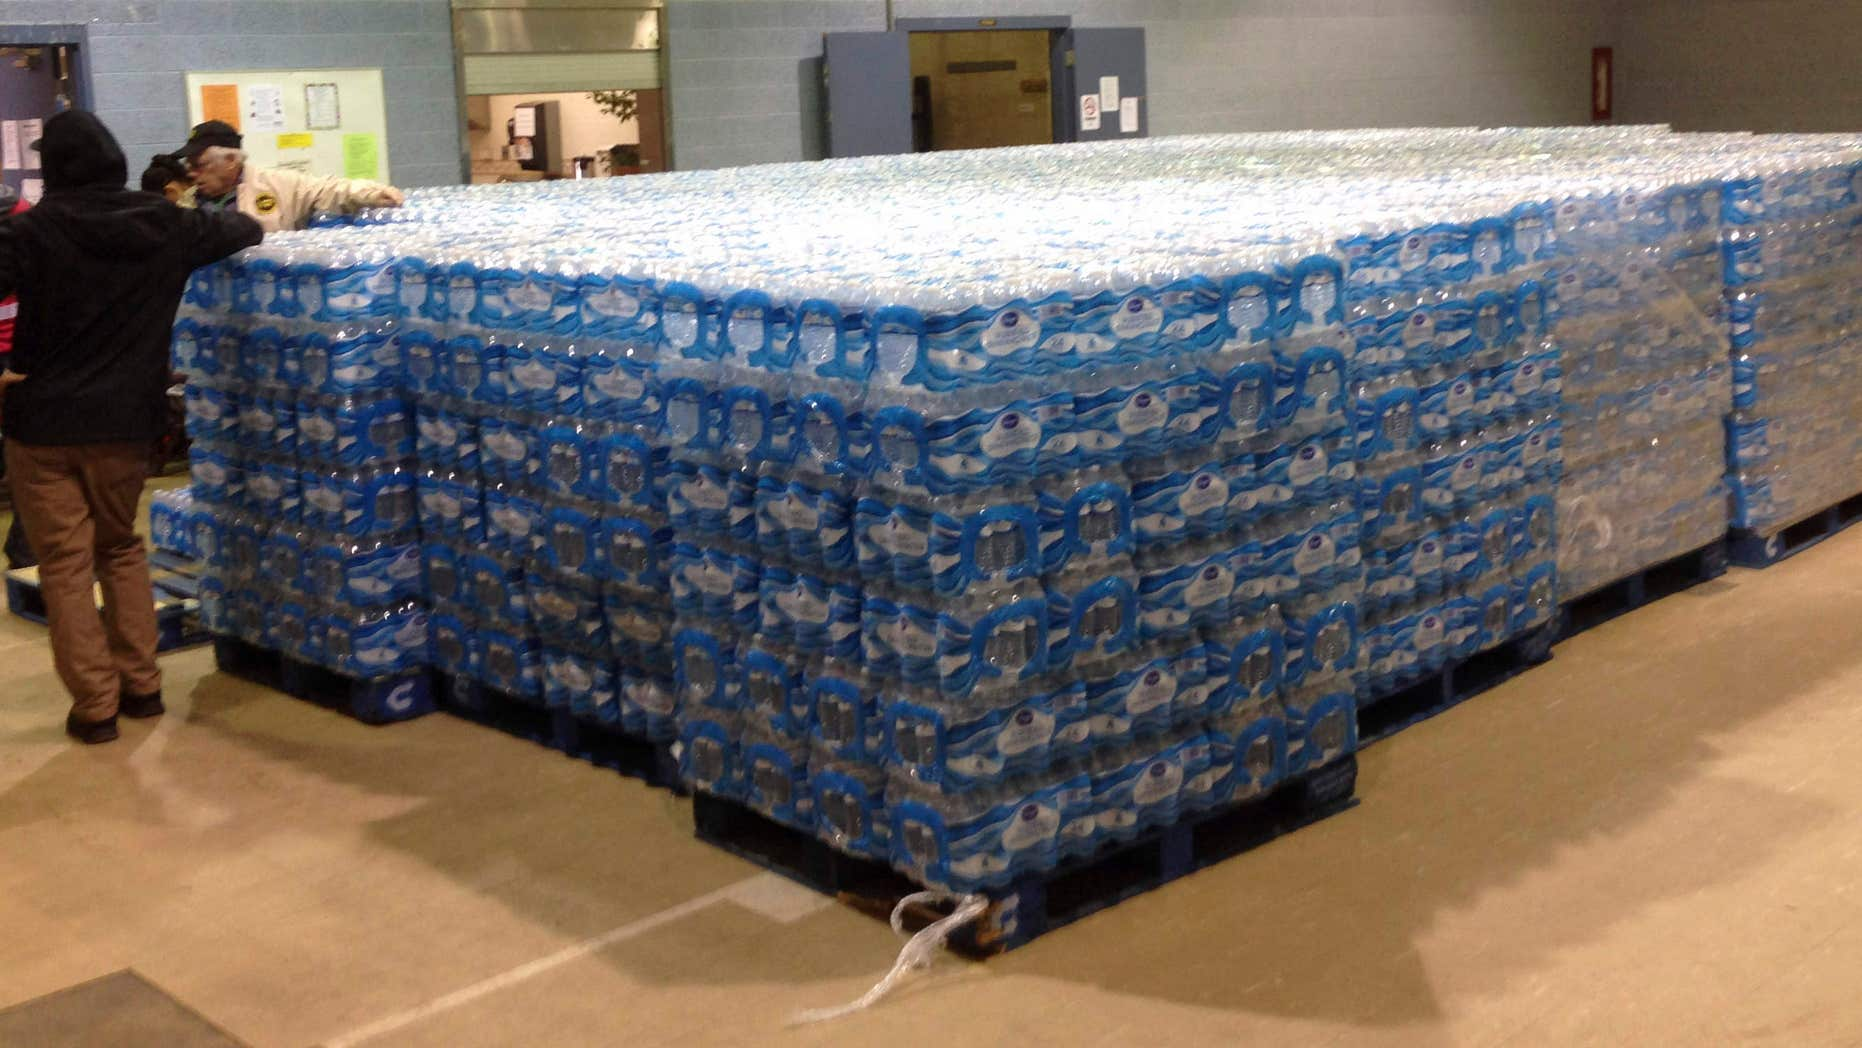 Jan. 26, 2016: Pallets of water, ready for distribution in the community, sit at the Sebring Community Center.